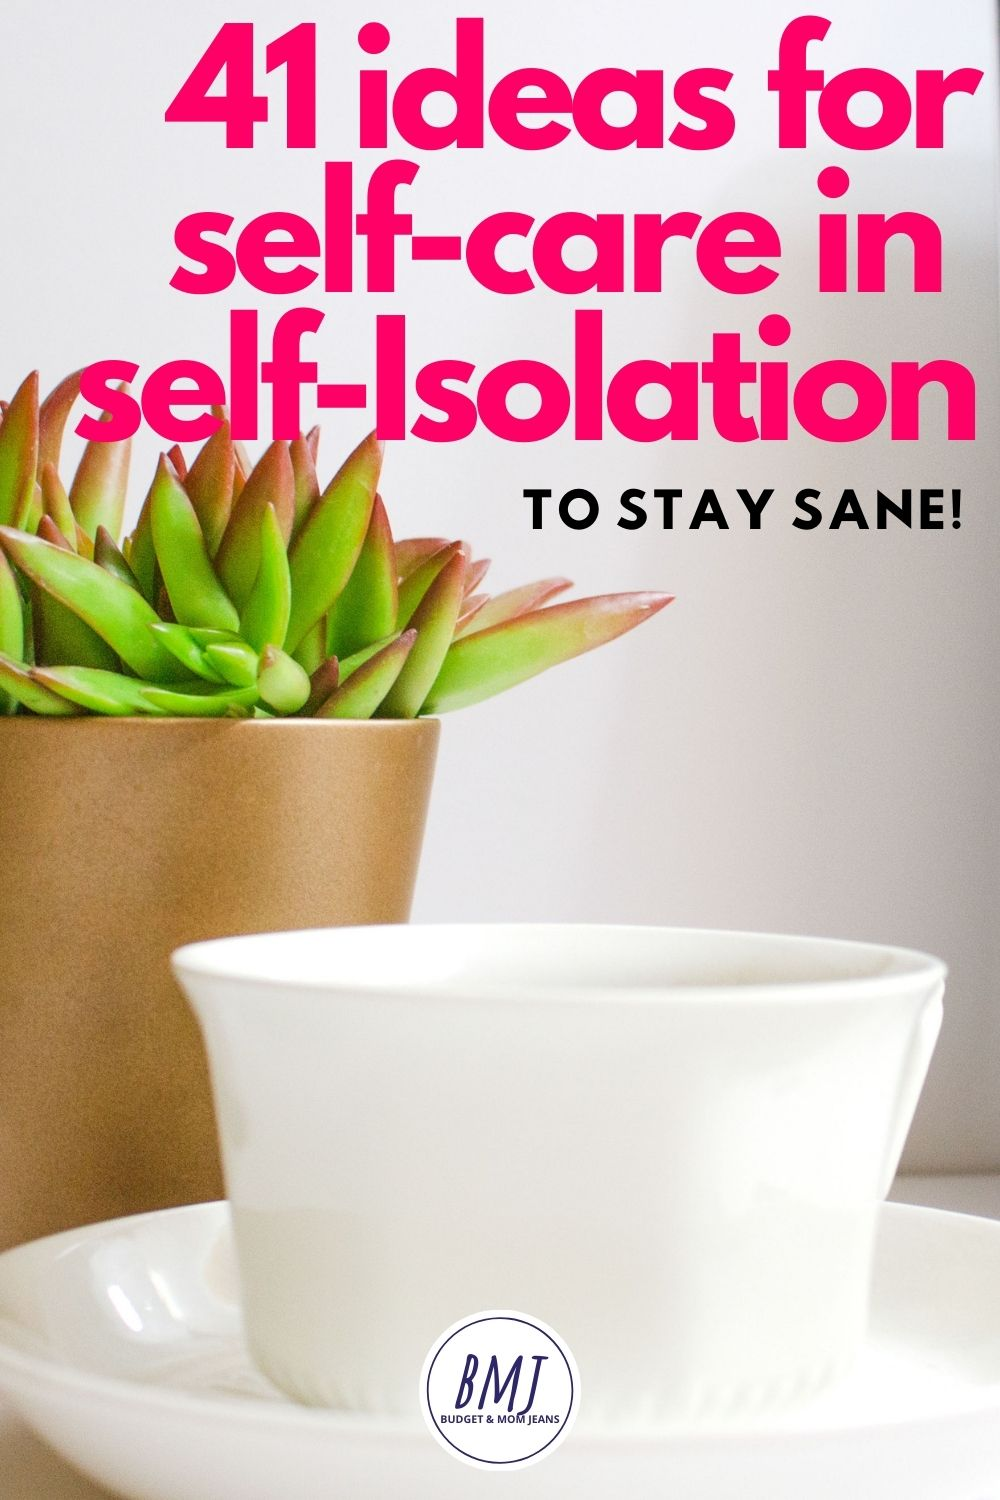 41 ideas for self-care in self-isolation, to stay sane